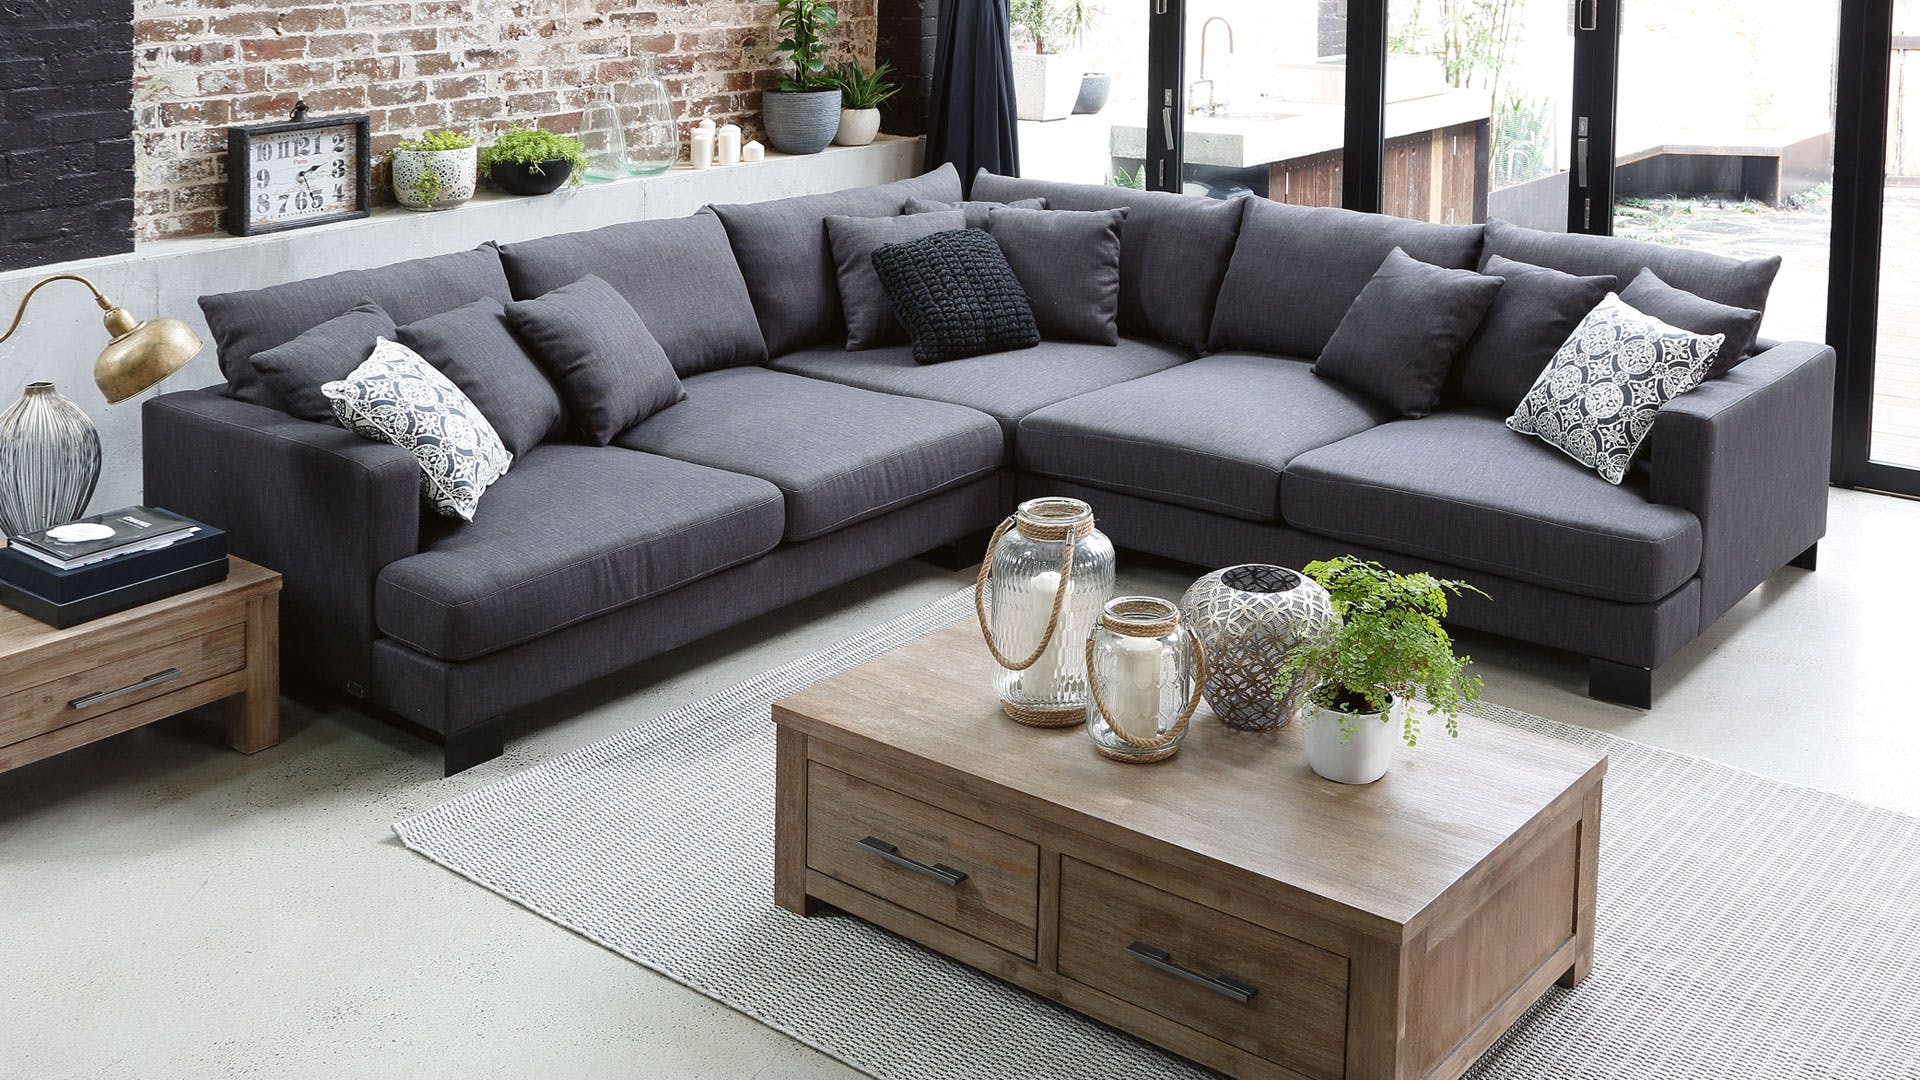 Buy furniture for office and home